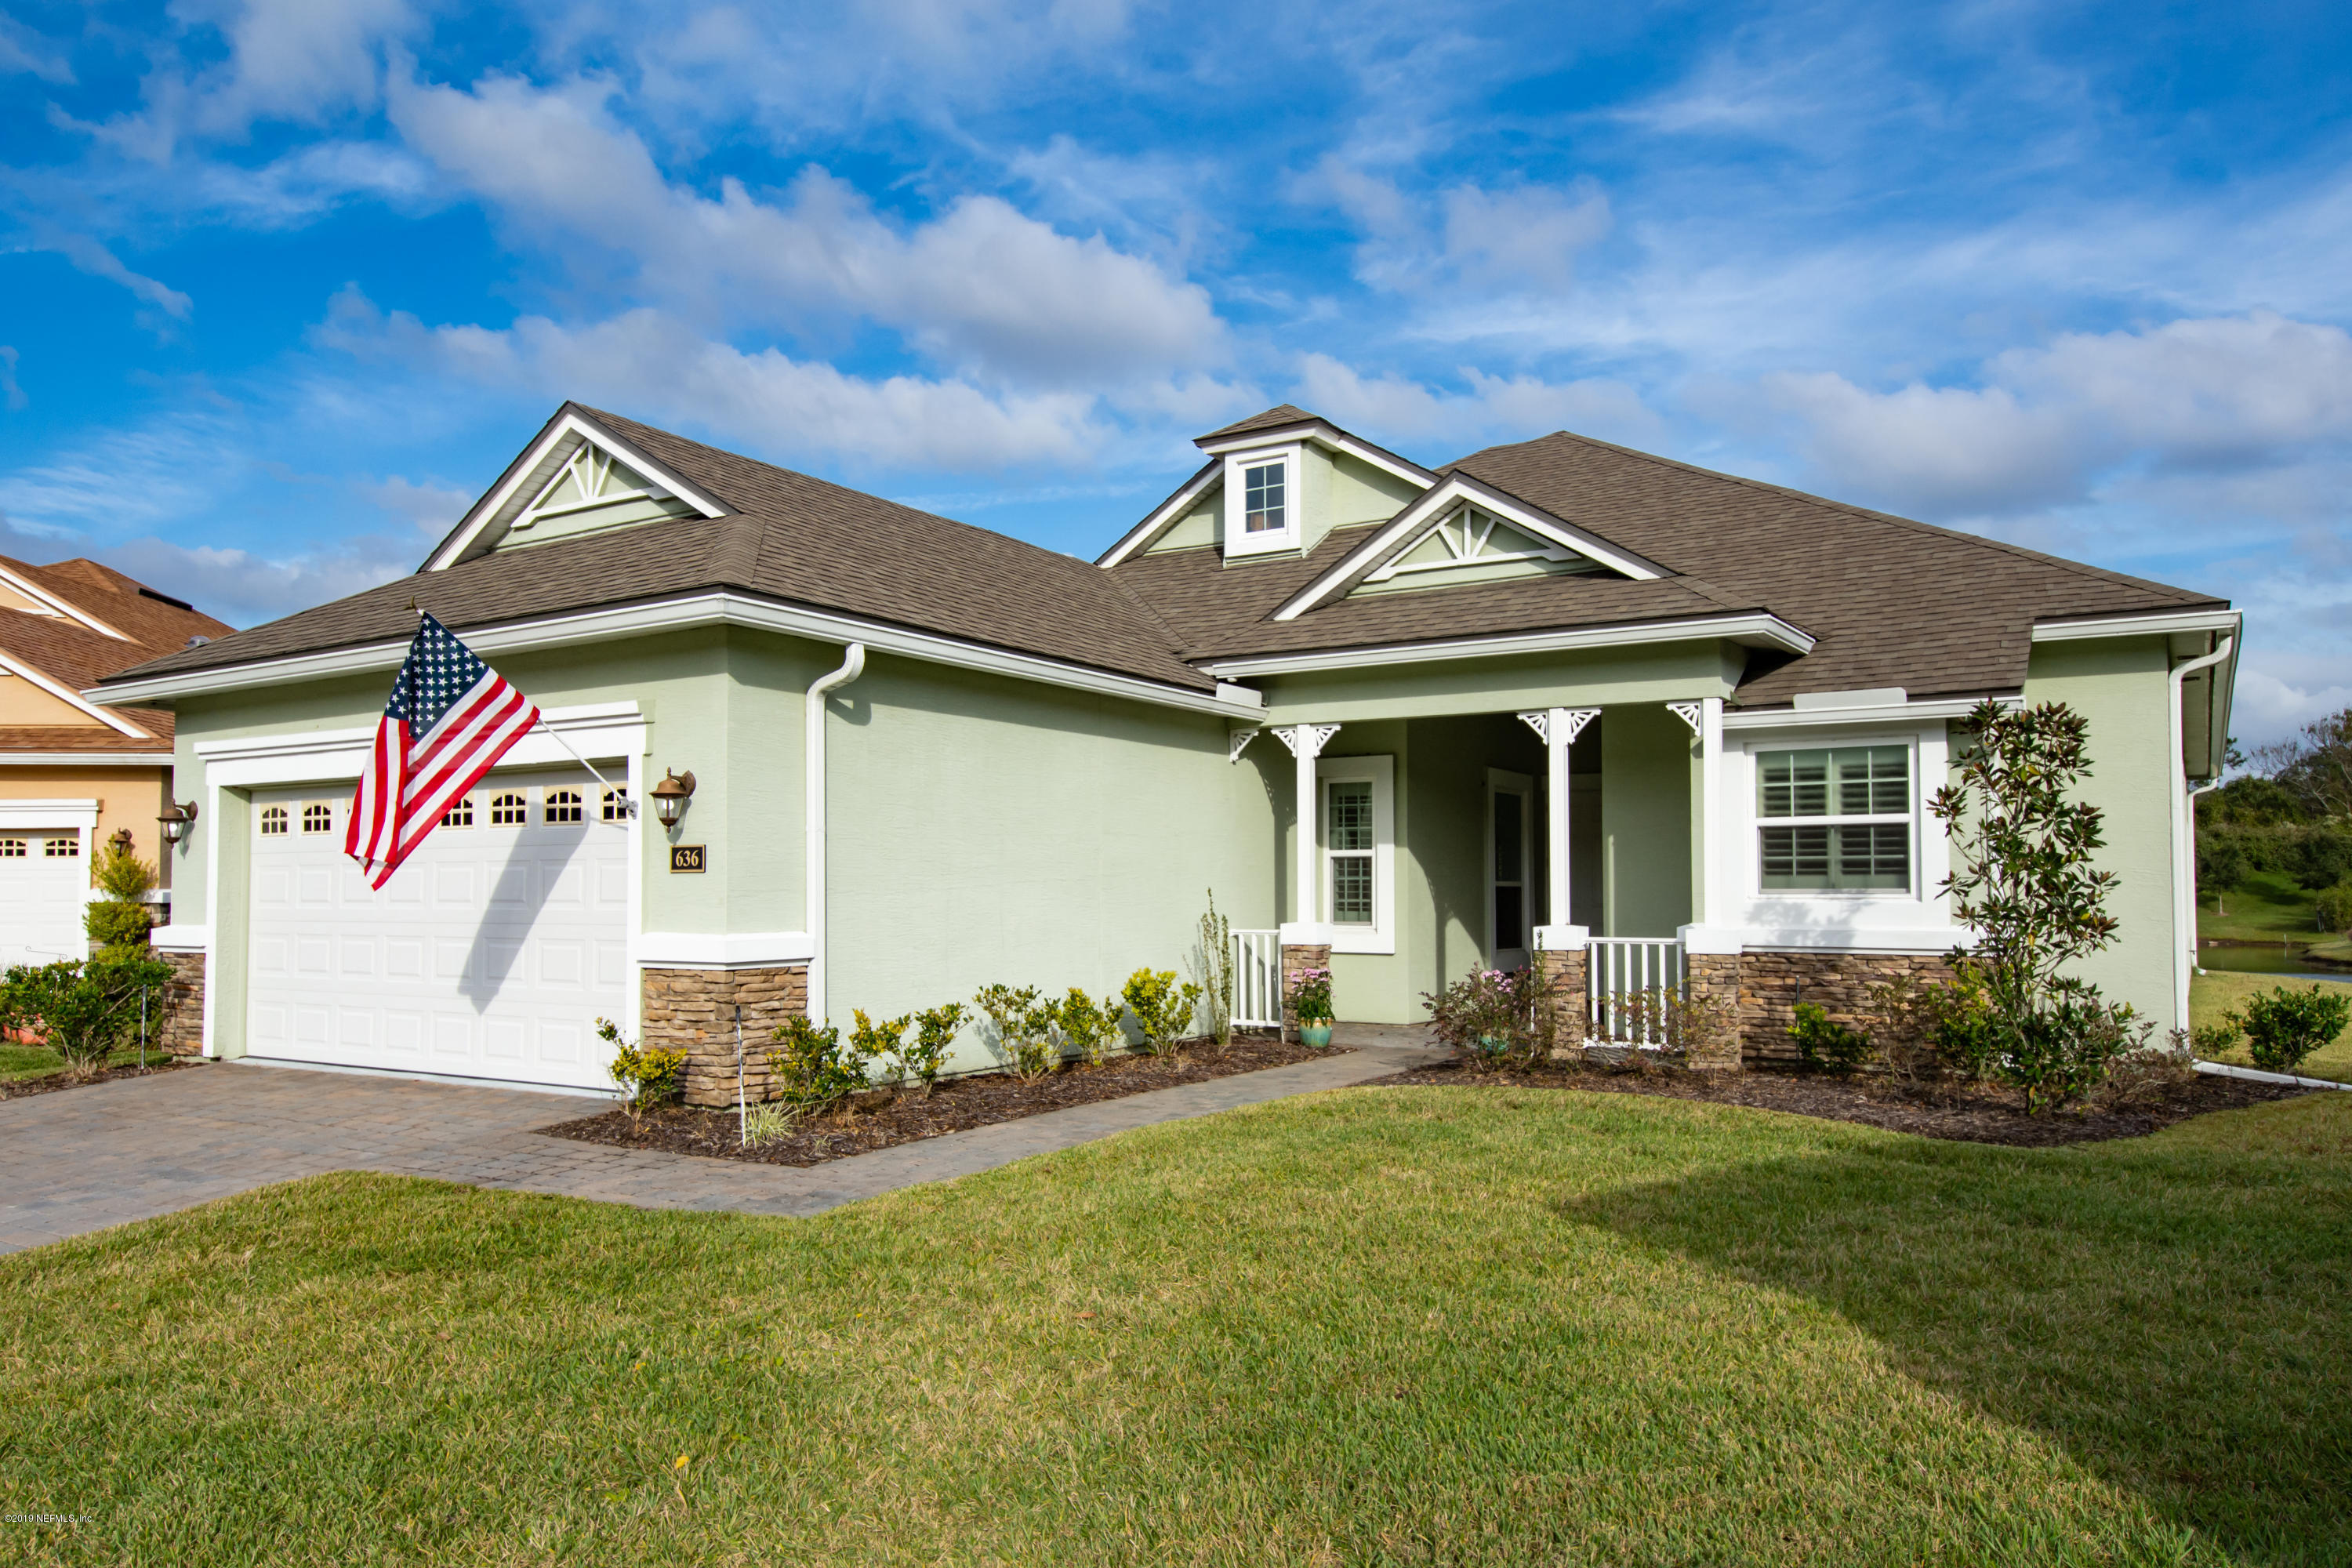 636 LEGACY, ST AUGUSTINE, FLORIDA 32092, 3 Bedrooms Bedrooms, ,2 BathroomsBathrooms,Residential,For sale,LEGACY,1025189